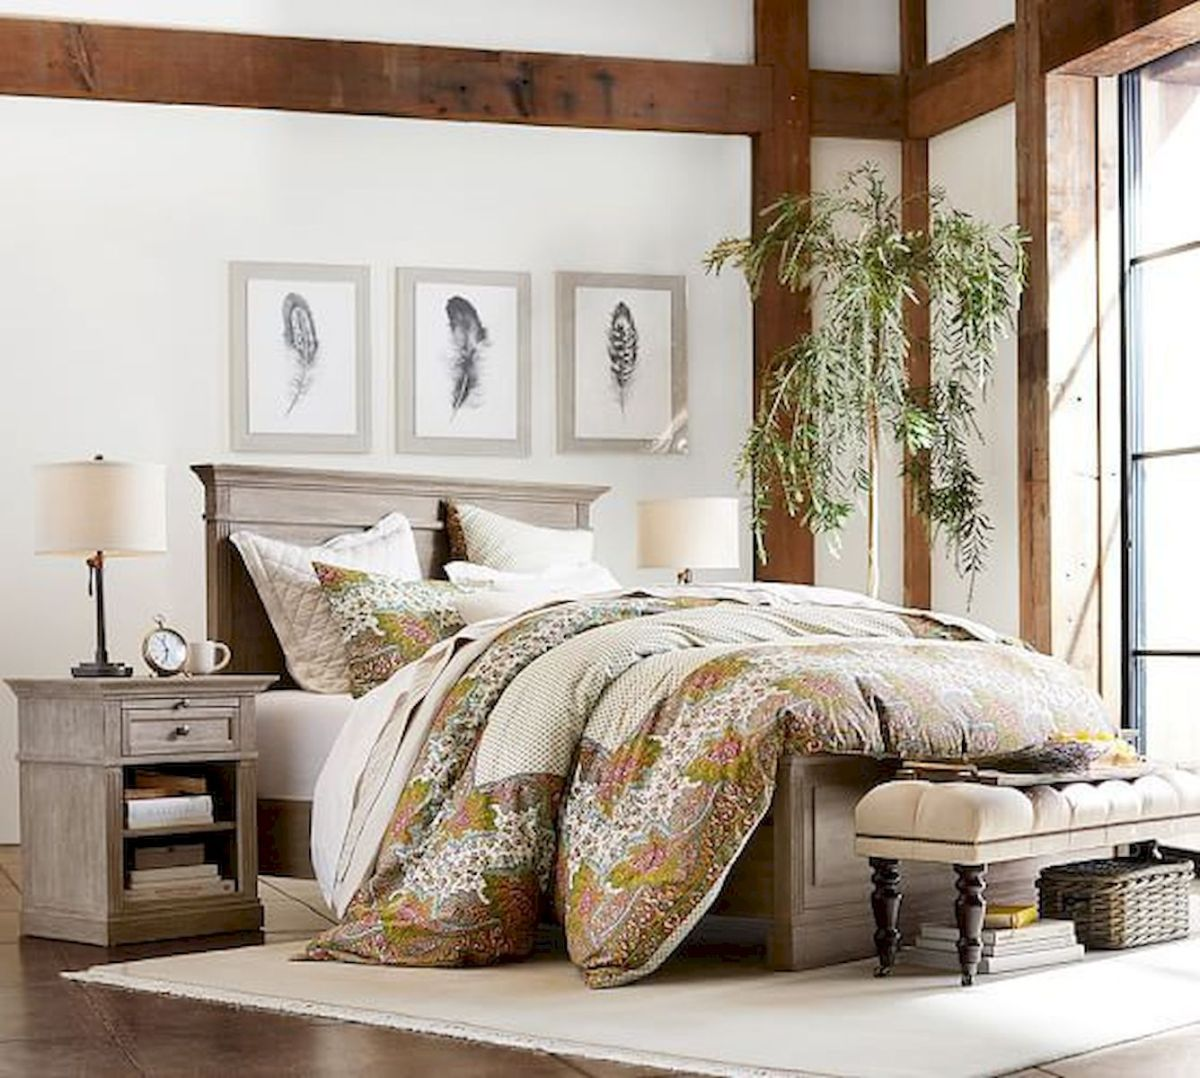 50 Awesome Farmhouse Bedroom Decor Ideas And Remodel (23)